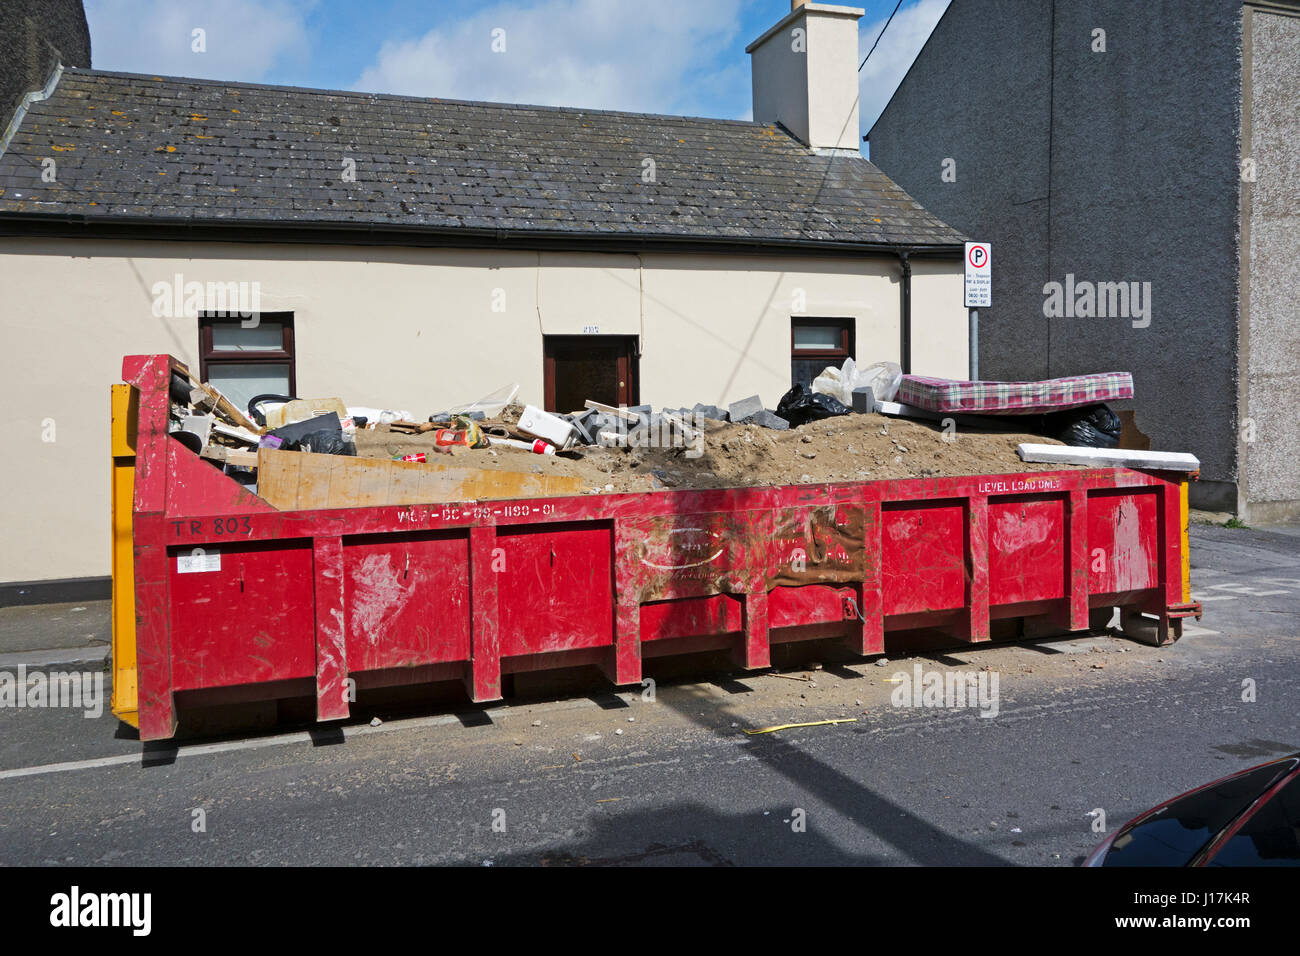 A fully laden large builders skip on an Irish street with earth and debris - Stock Image